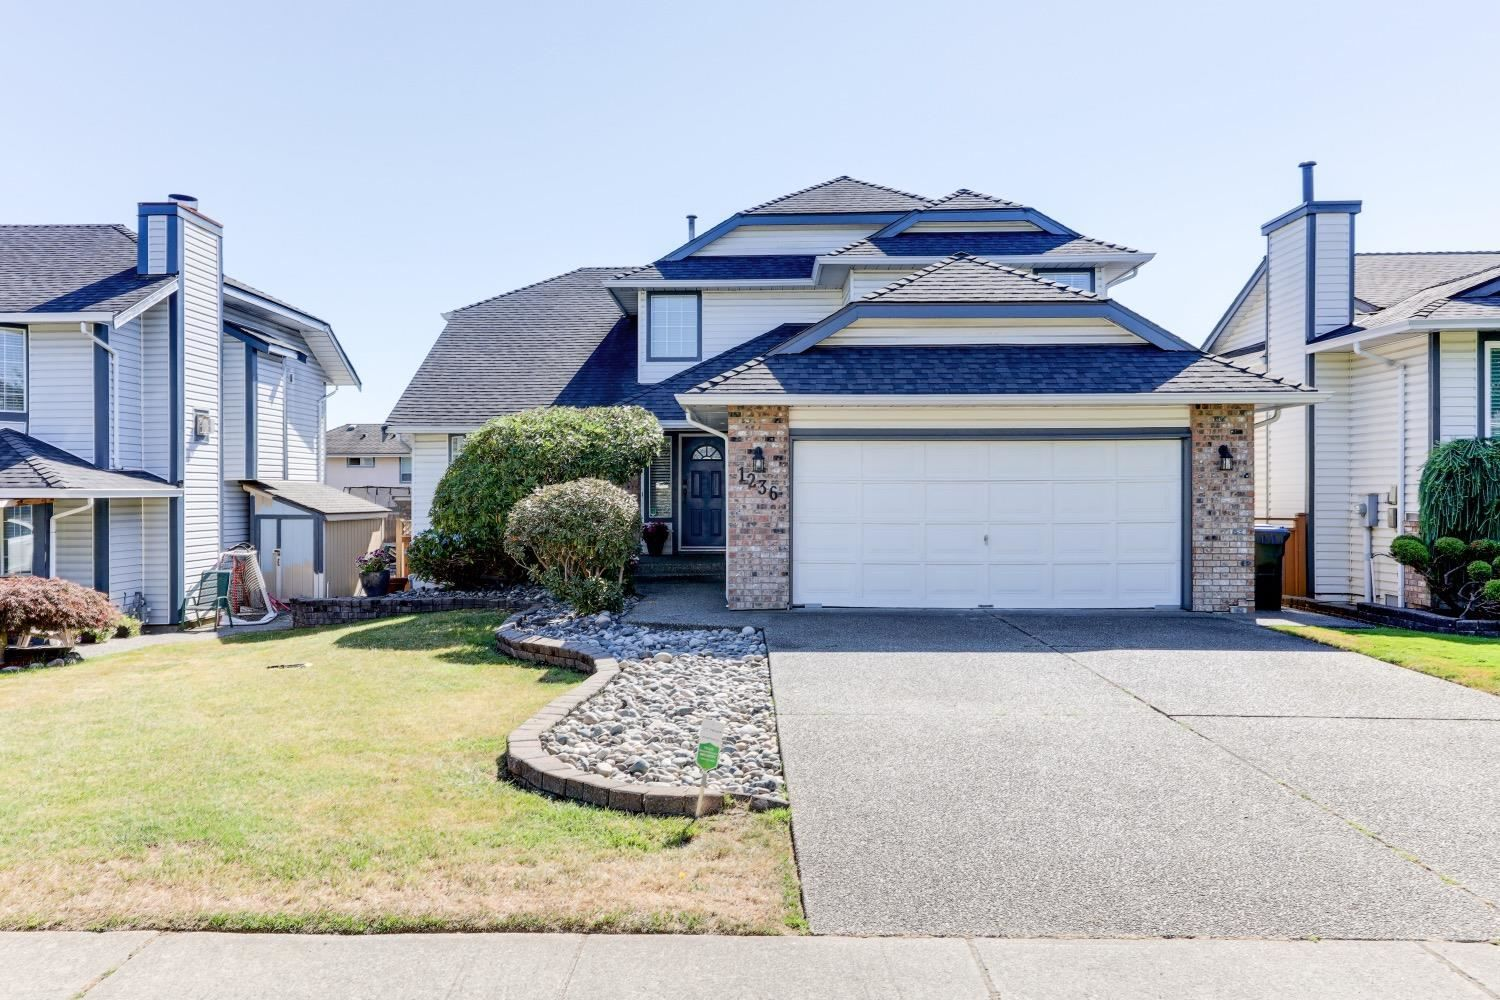 Main Photo: 1236 KENSINGTON Place in Port Coquitlam: Citadel PQ House for sale : MLS®# R2603349